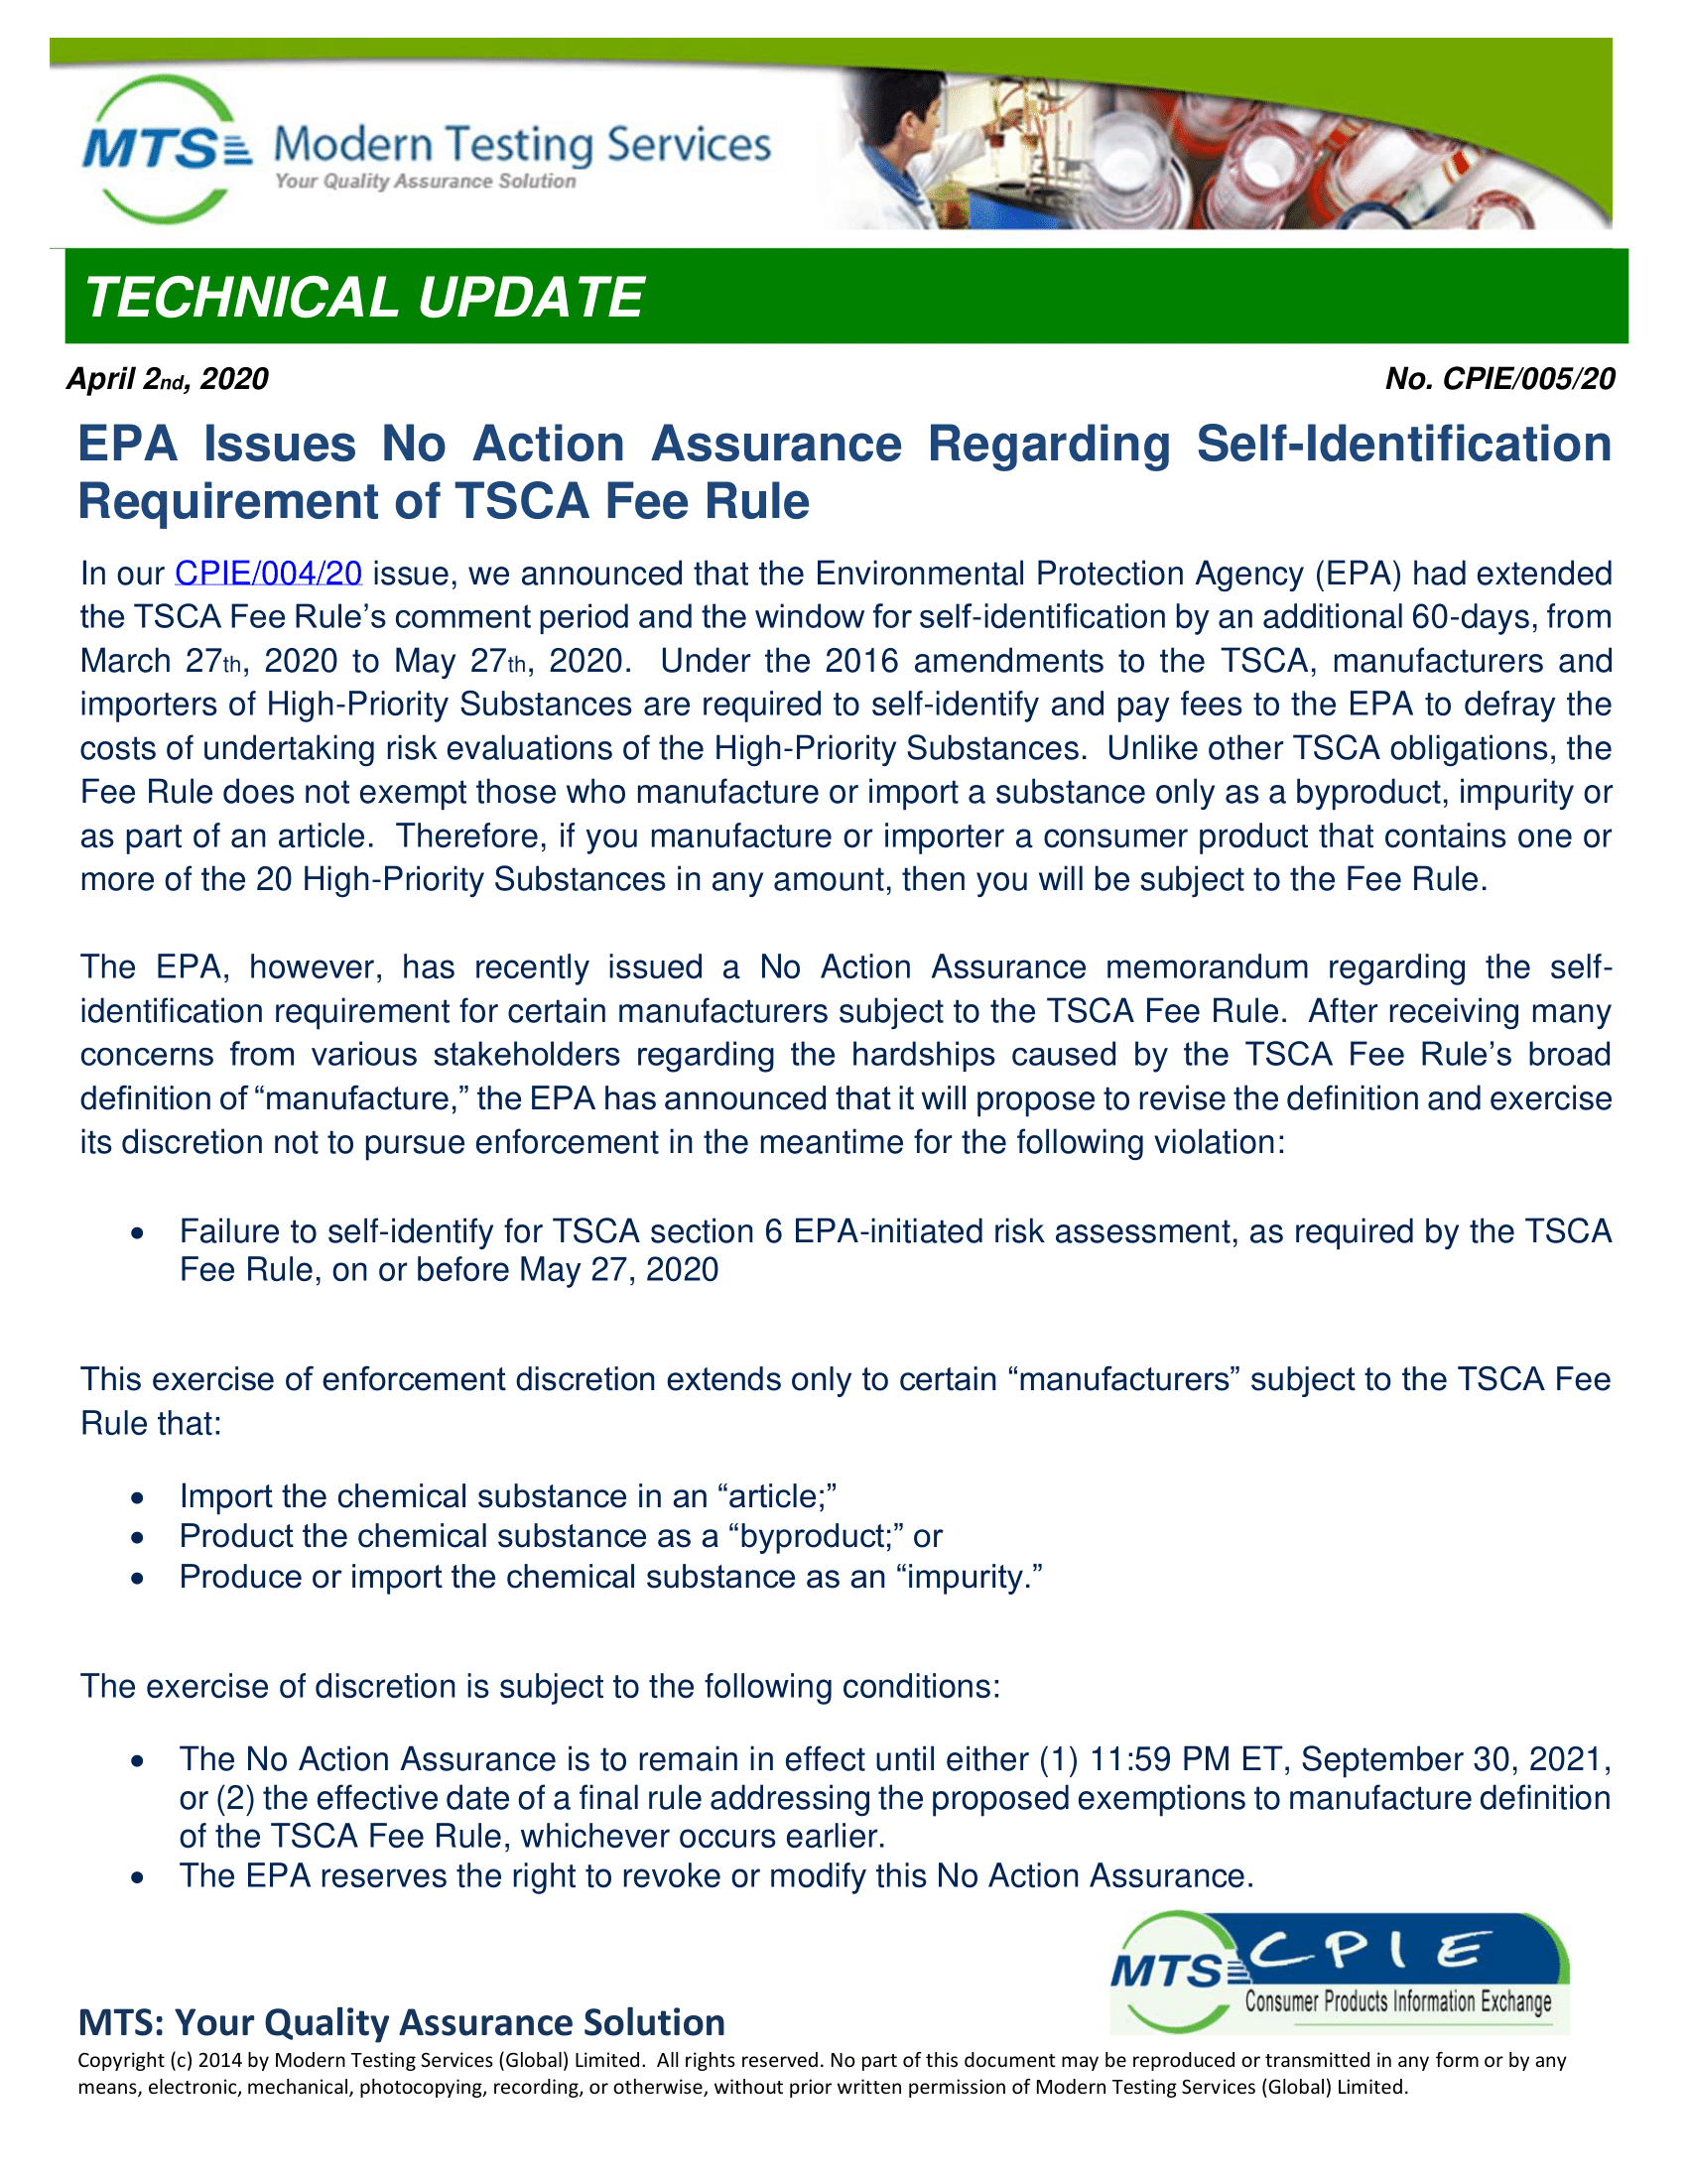 CPIE-005-20 EPA Issues No Action Assurance 1